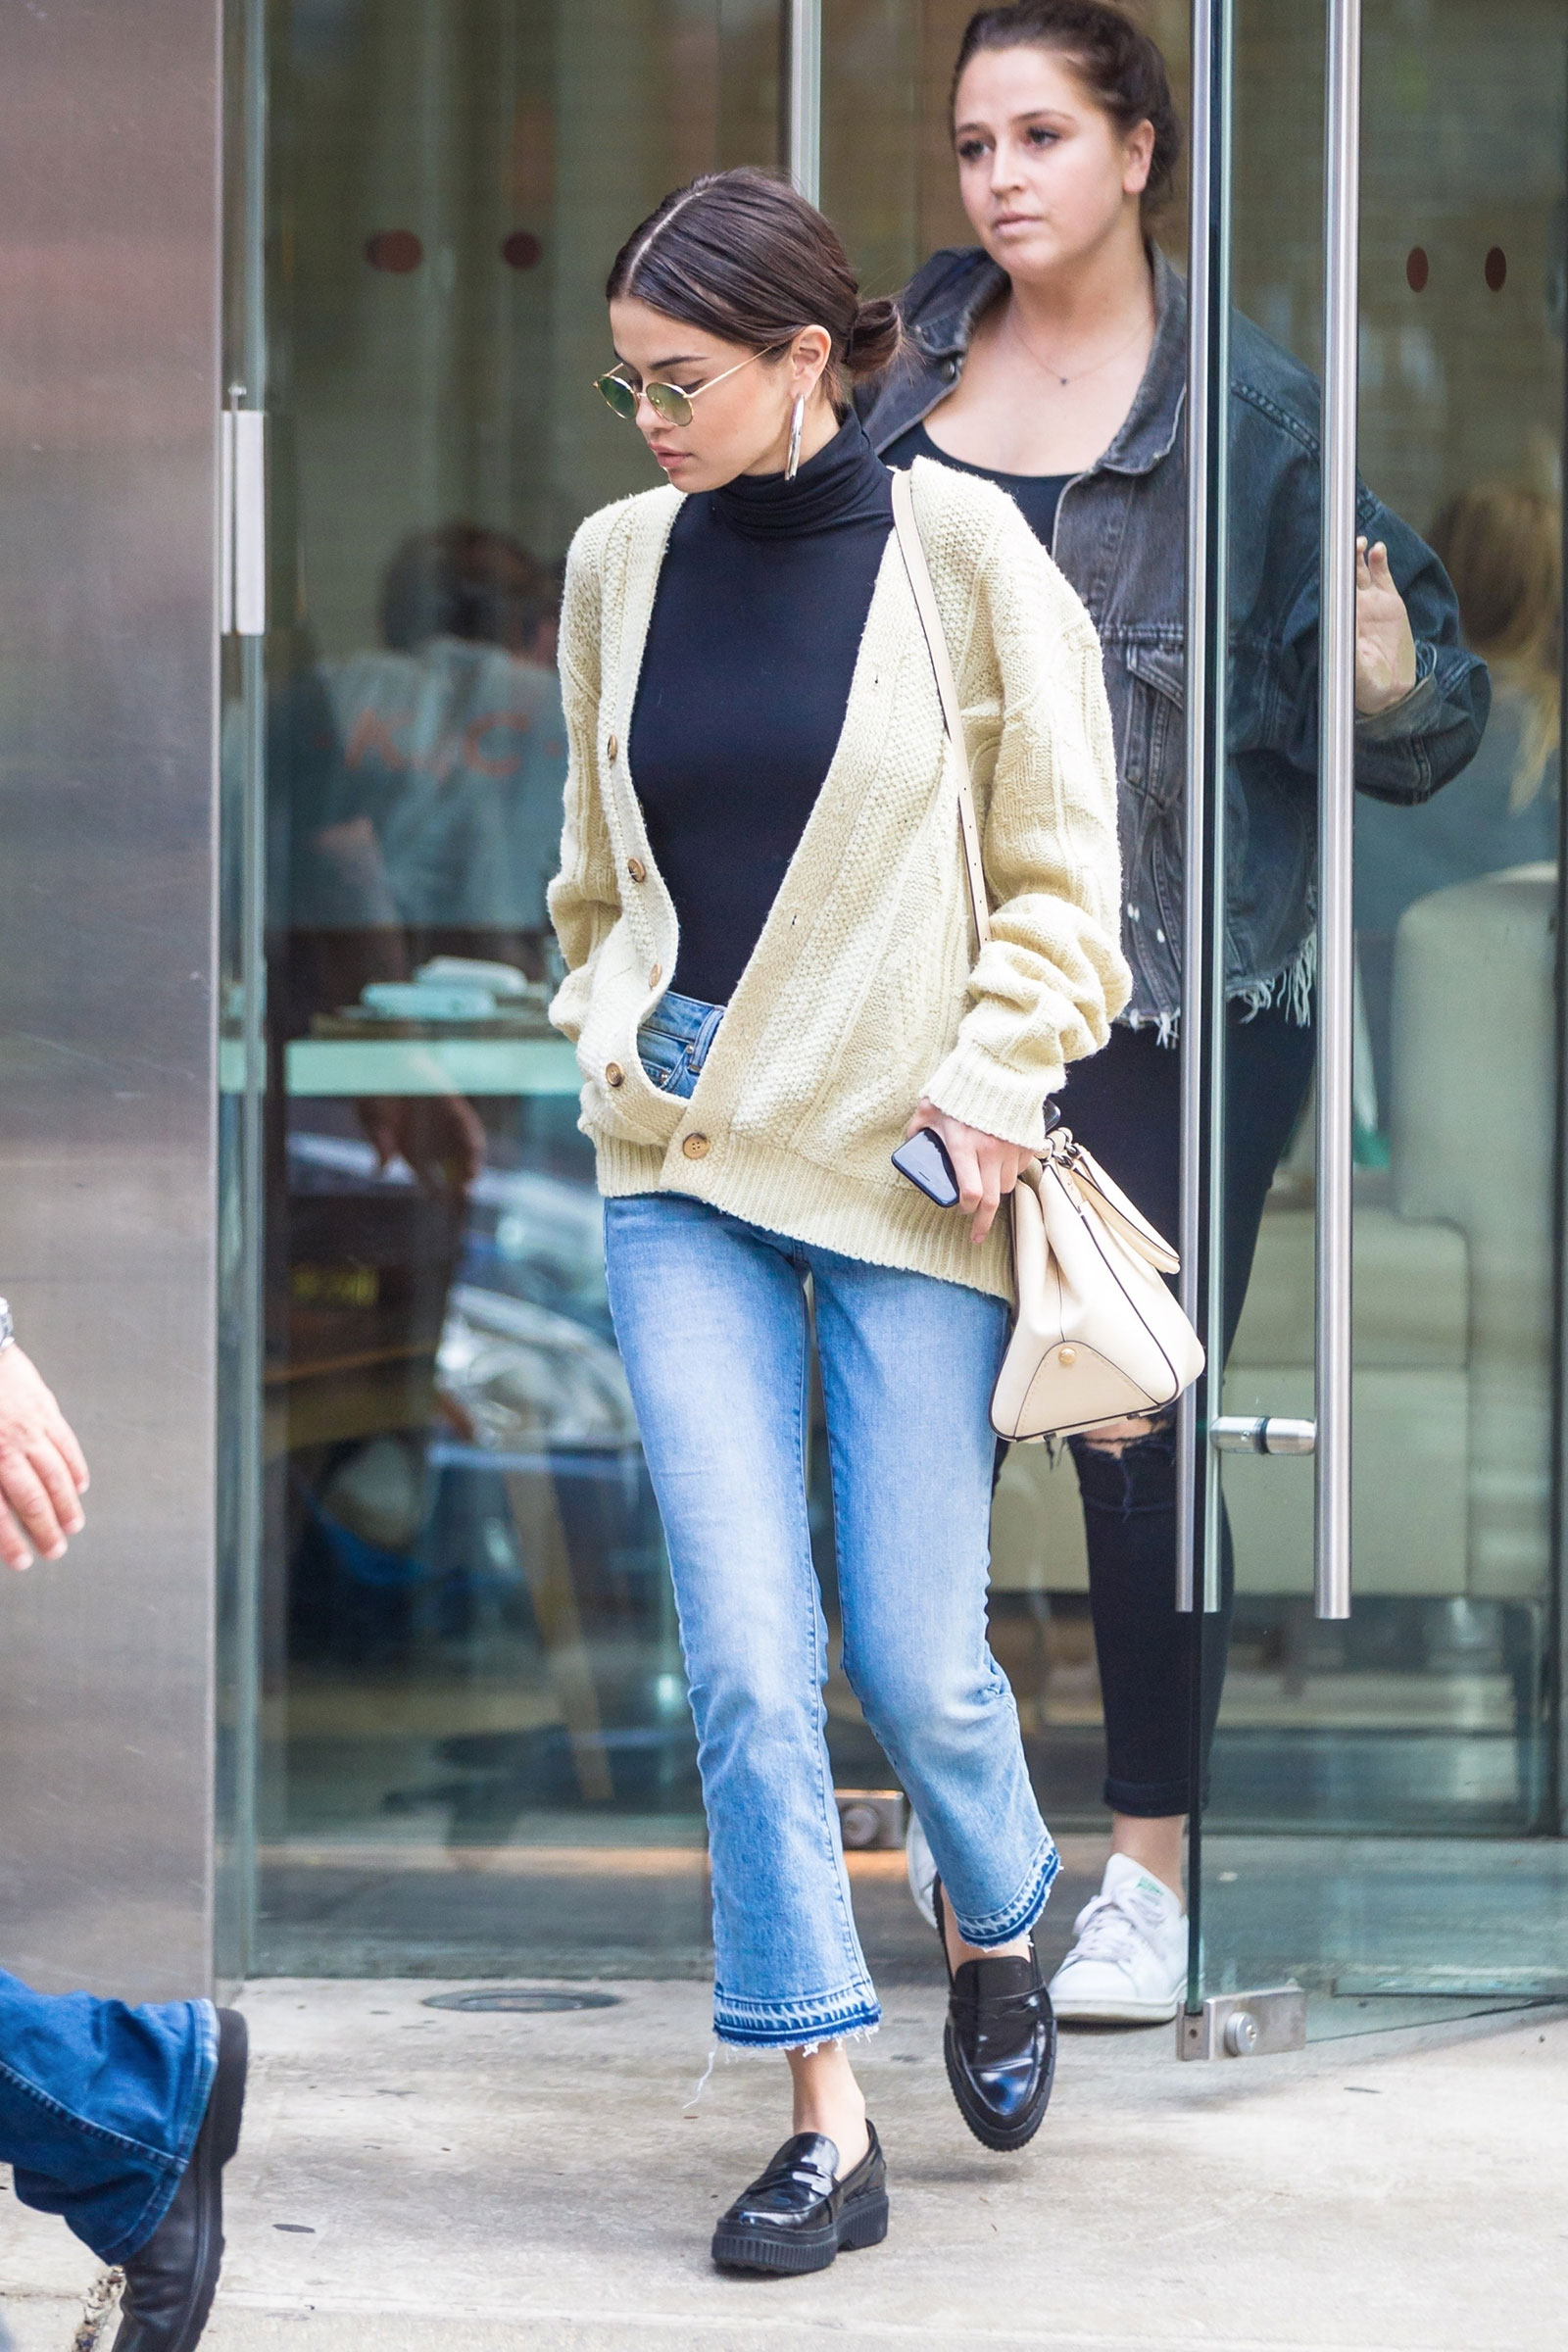 d06eb7c1d72 Selena Gomez s Turtleneck and Loafers Look for Less - The Budget ...